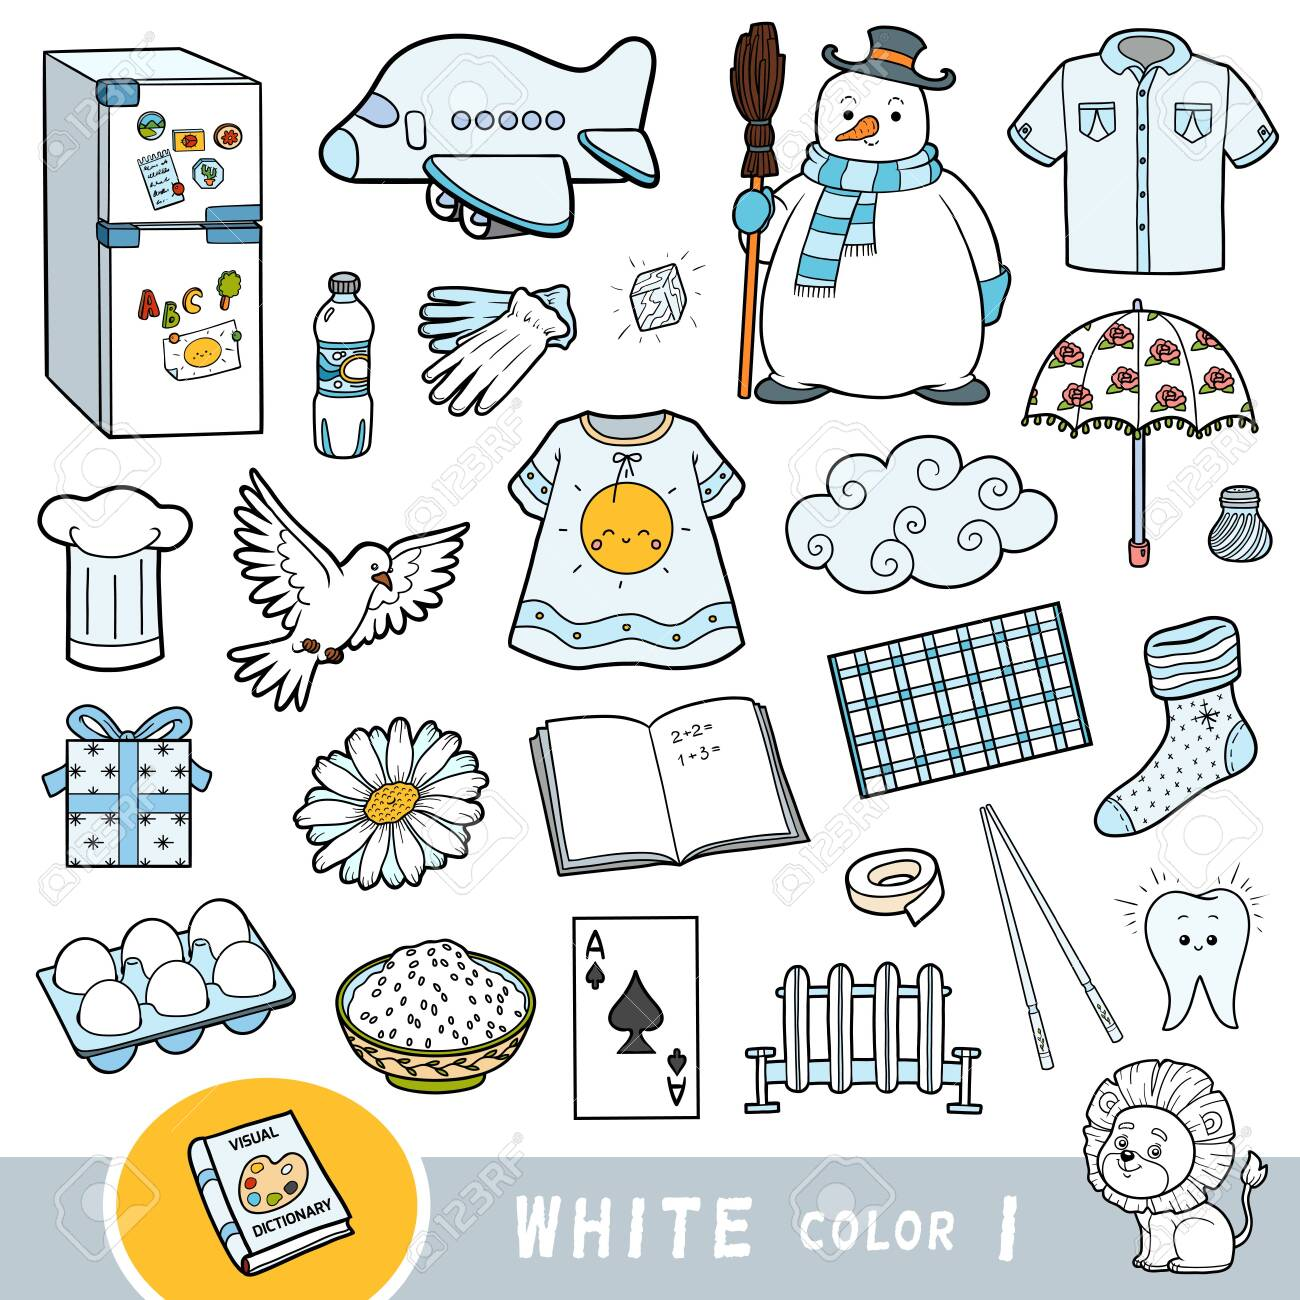 Colorful set of white color objects. Visual dictionary for children about the basic colors. Cartoon images to learning in kindergarten and preschool - 136781273